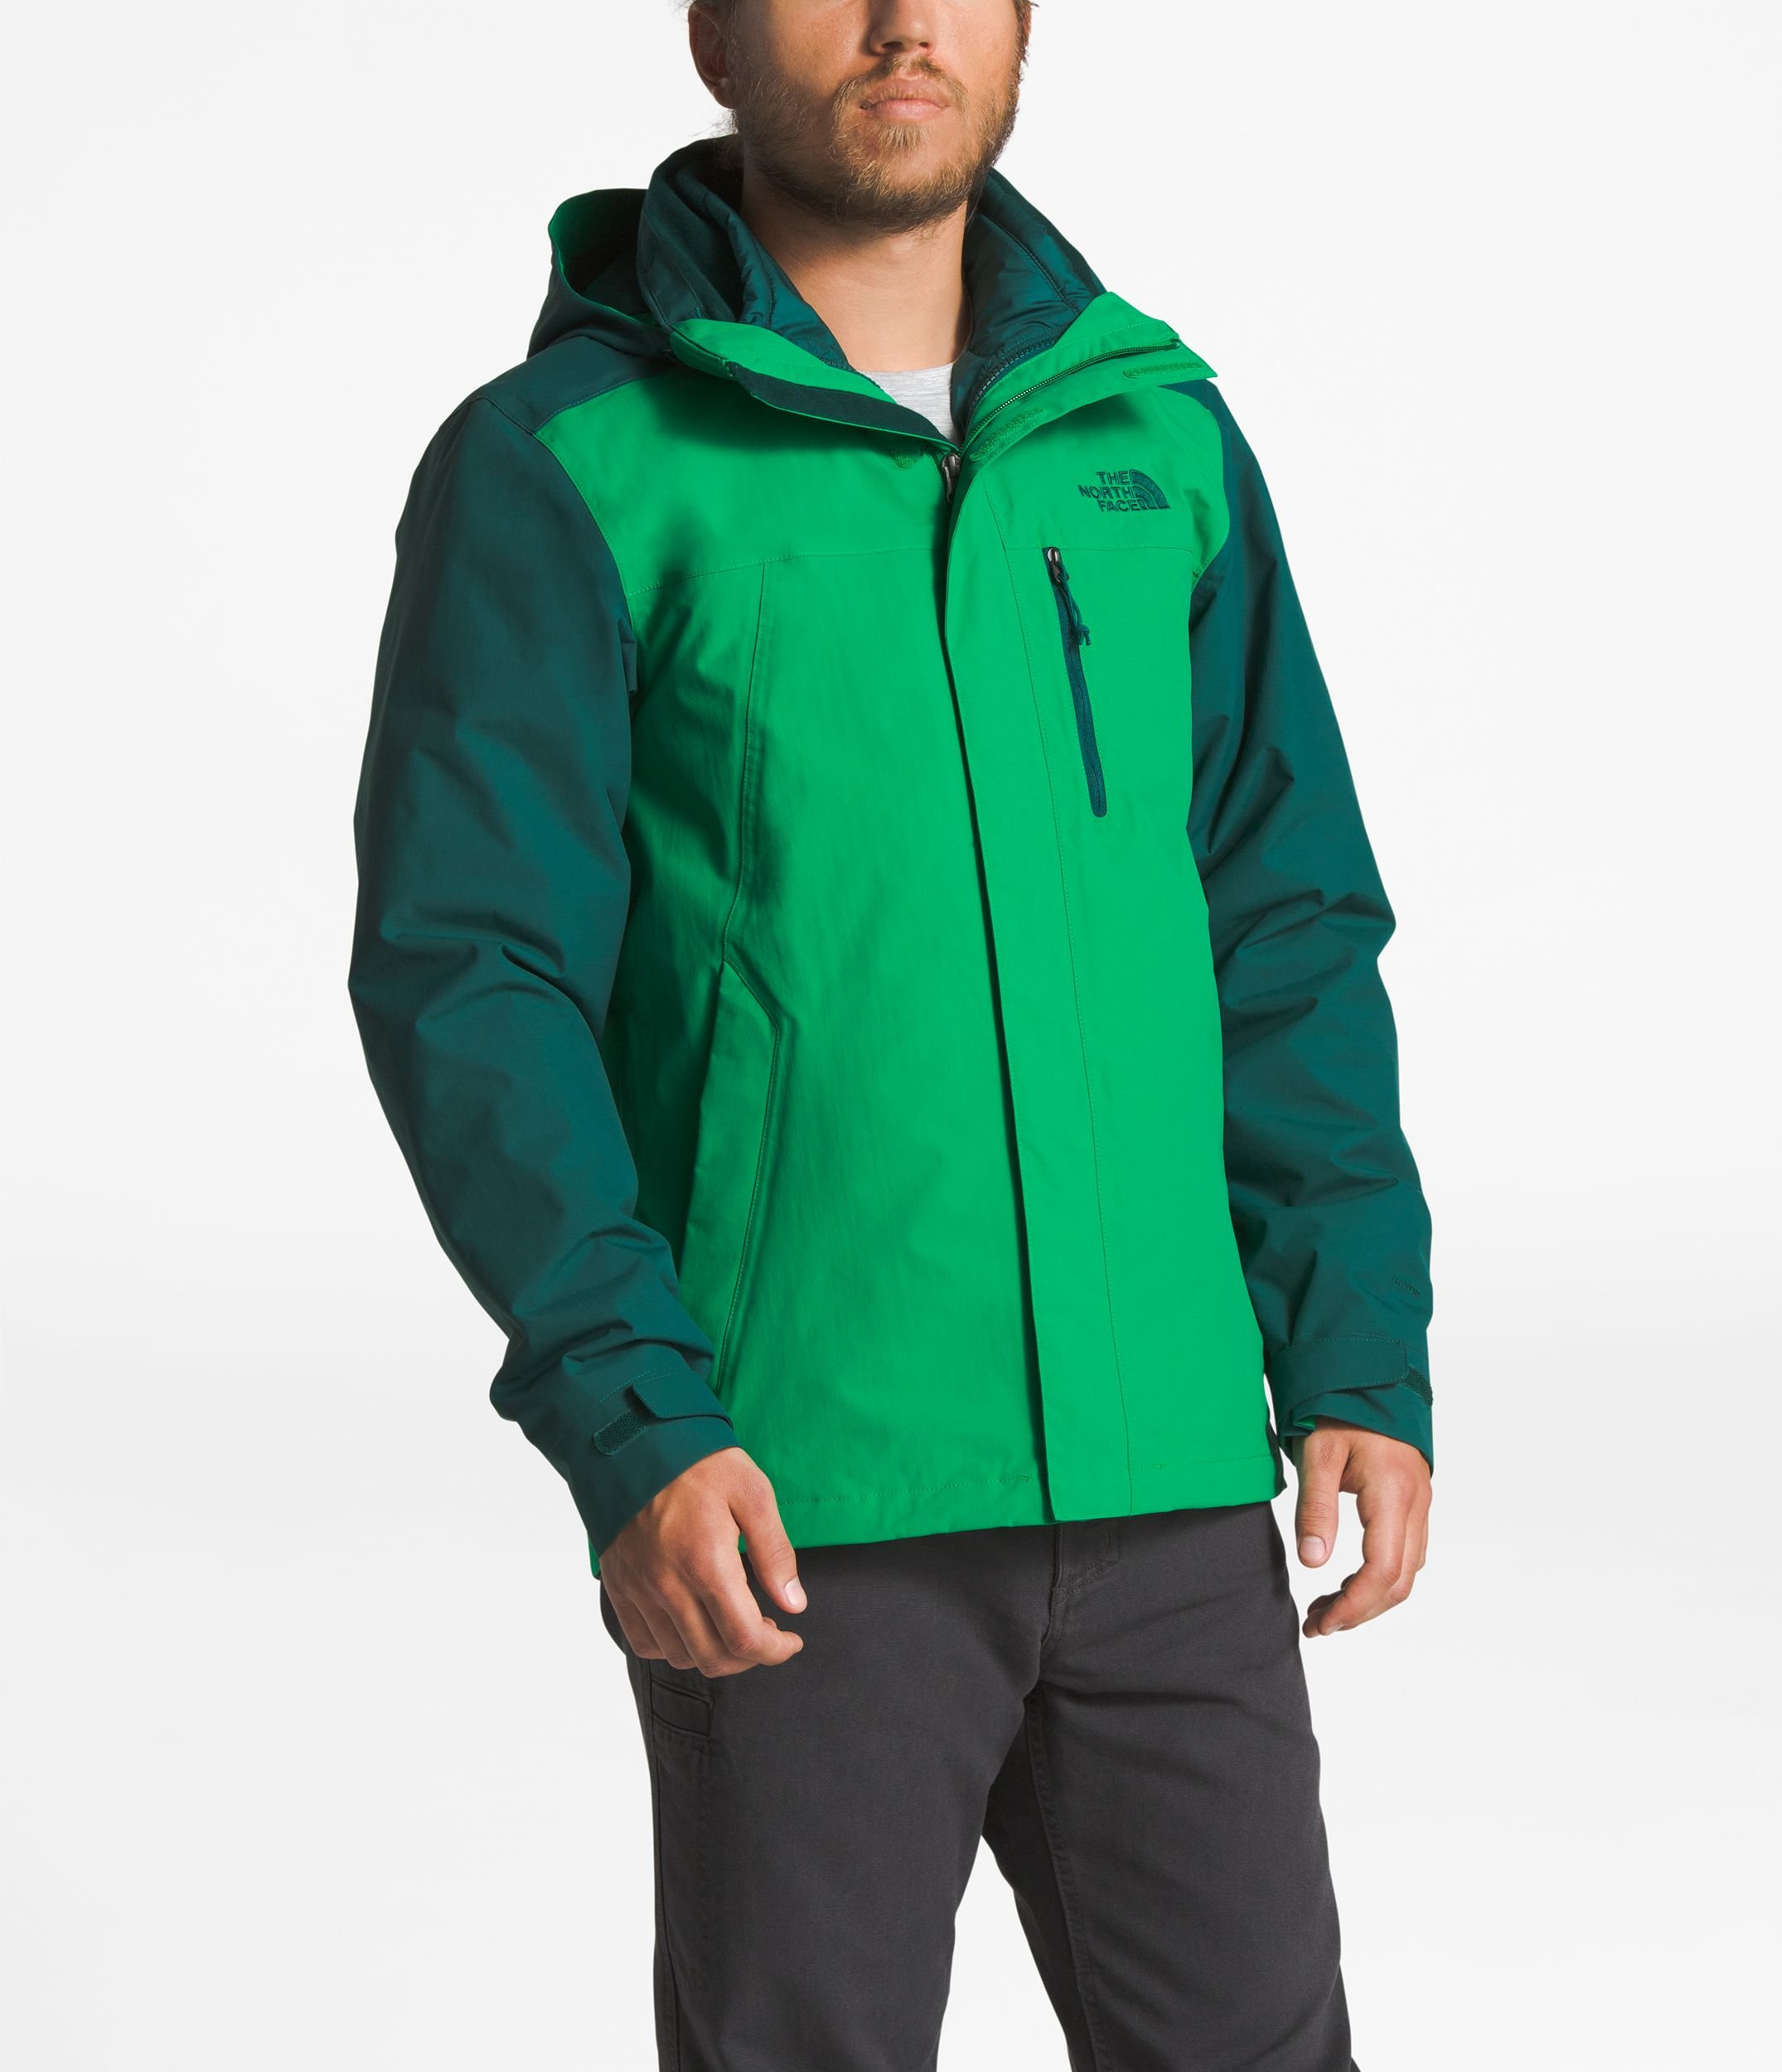 The North Face Men's Carto Triclimate Jacket - Primary Green & Botanical Garden Green - M